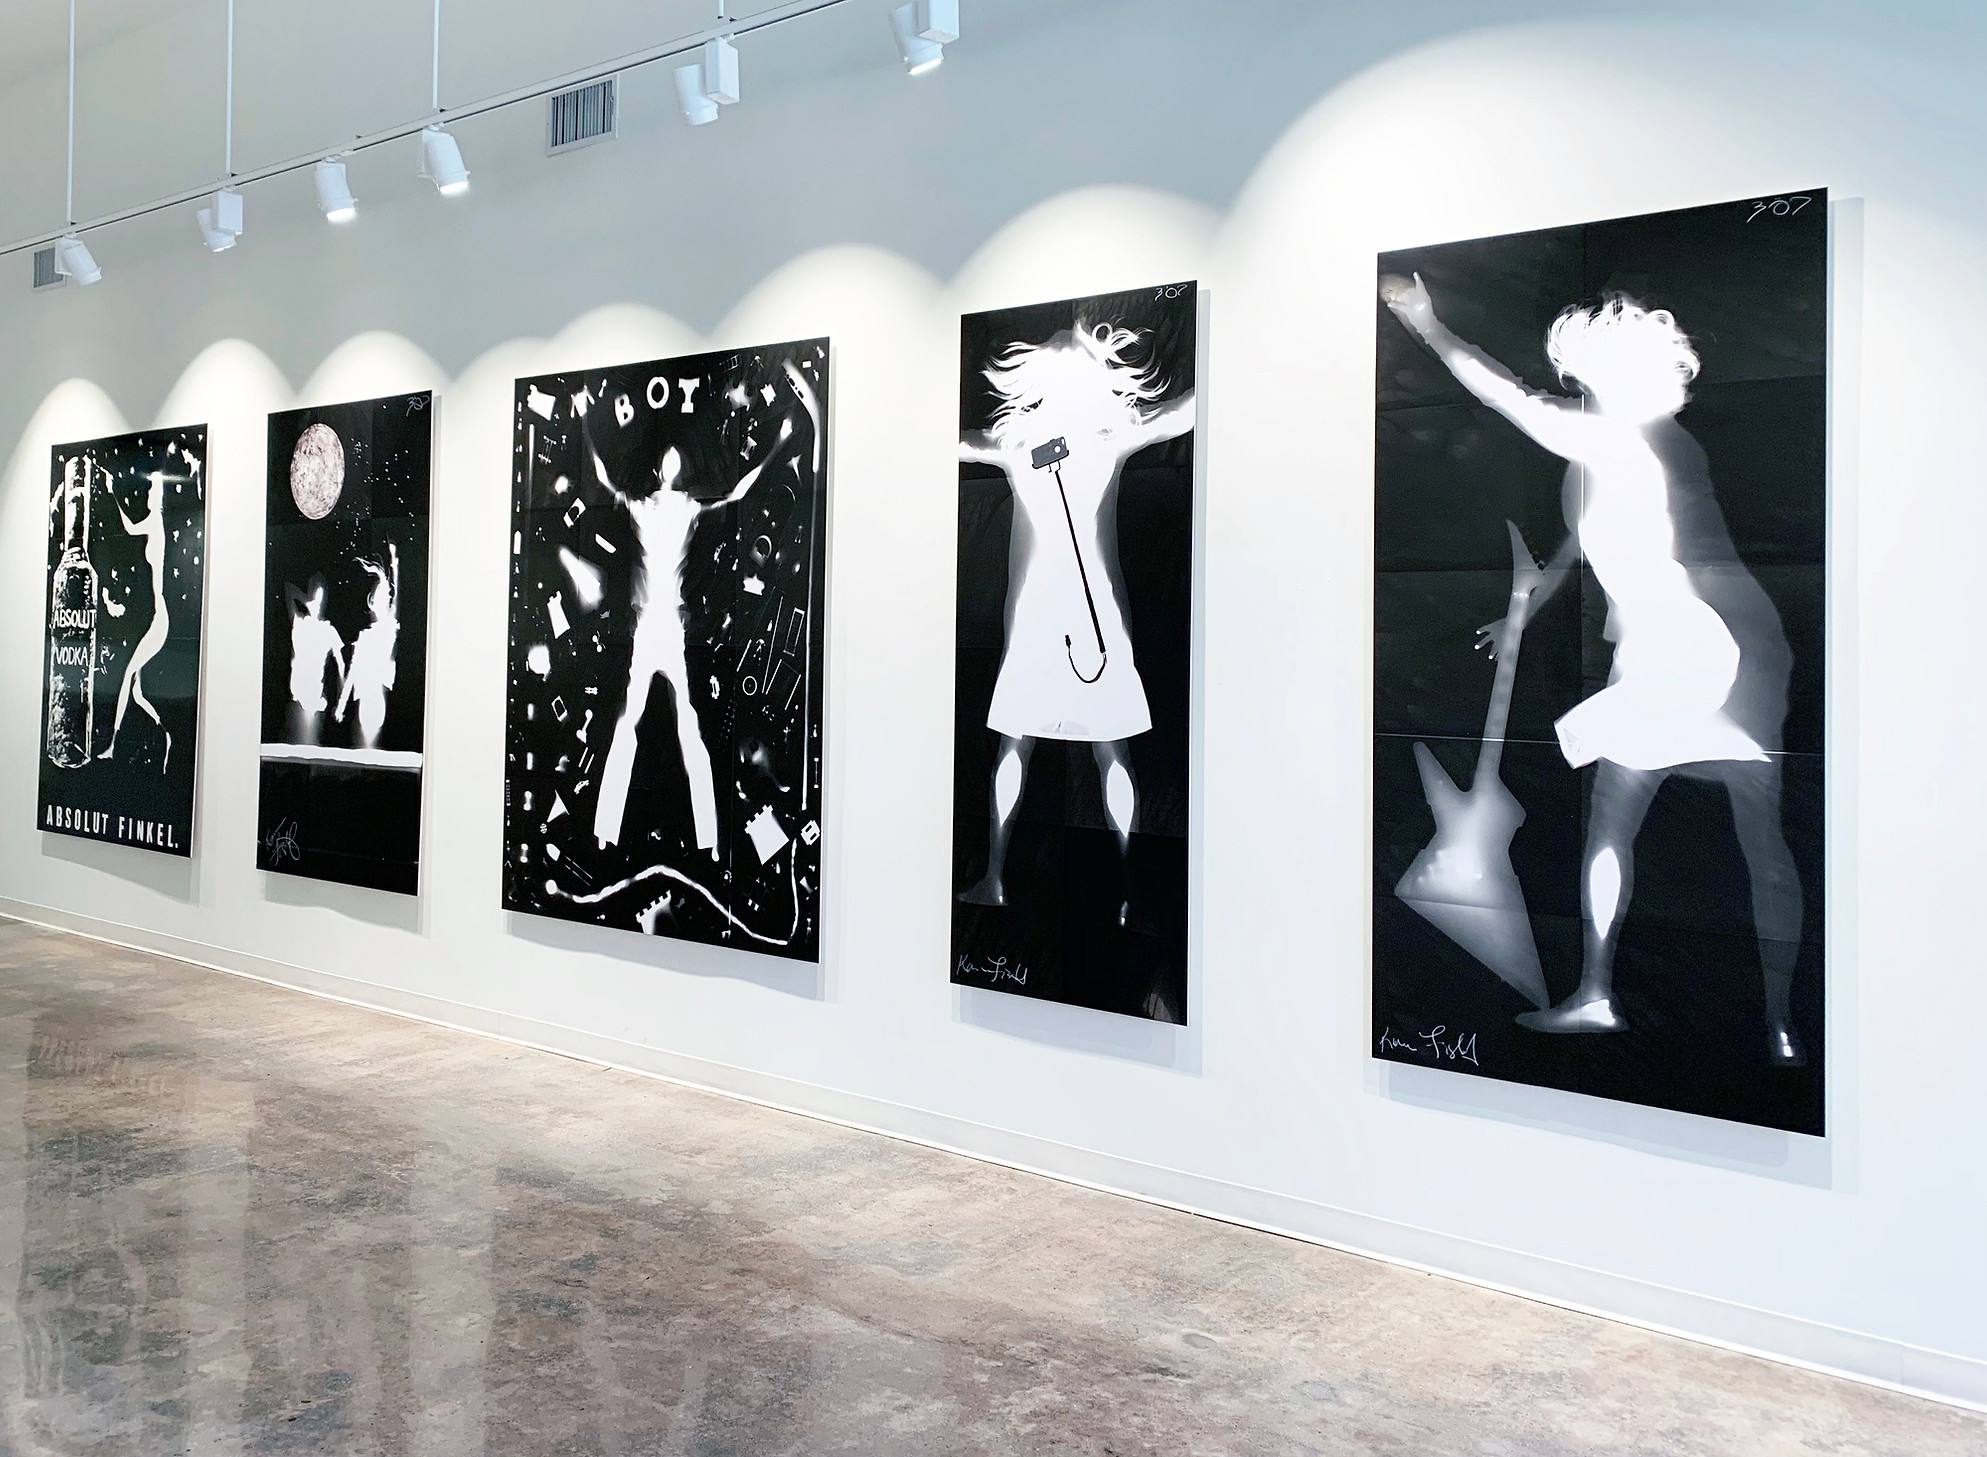 Art Gallery Exhibition Show of Artist Karen Amy Finkel Fishof large black and white photograms